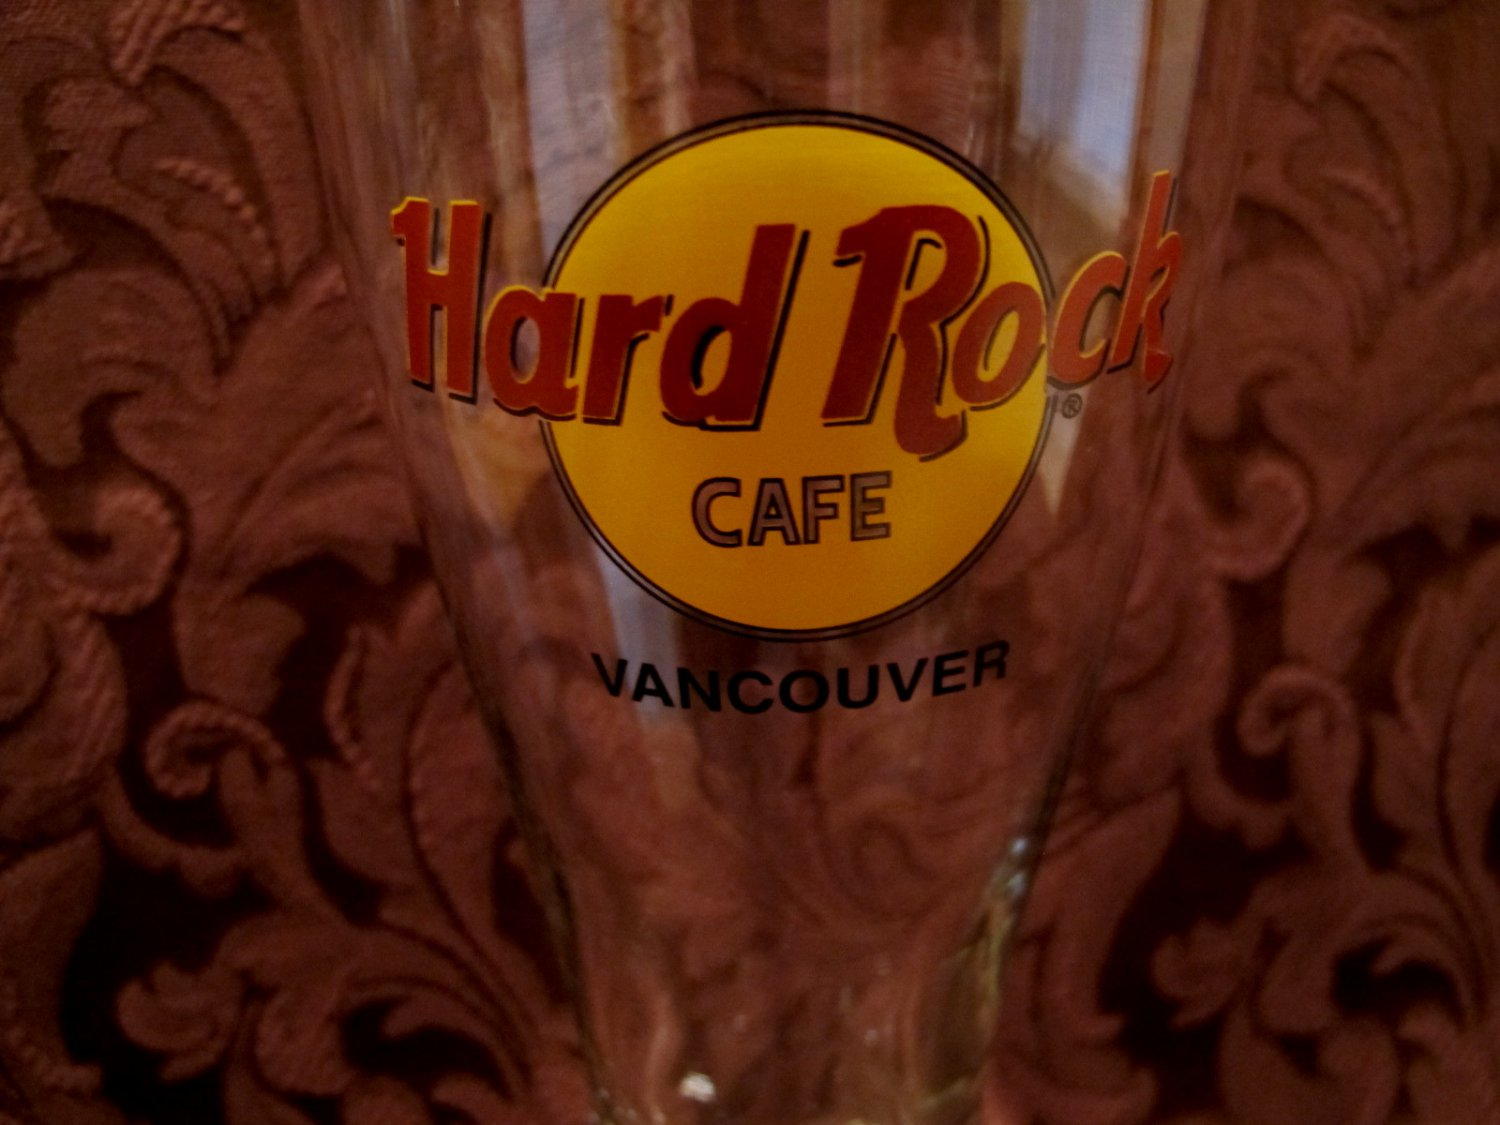 Vancouver bc hard rock cafe pilsner glass souvenir canada for Handley rock jewelry supply vancouver wa